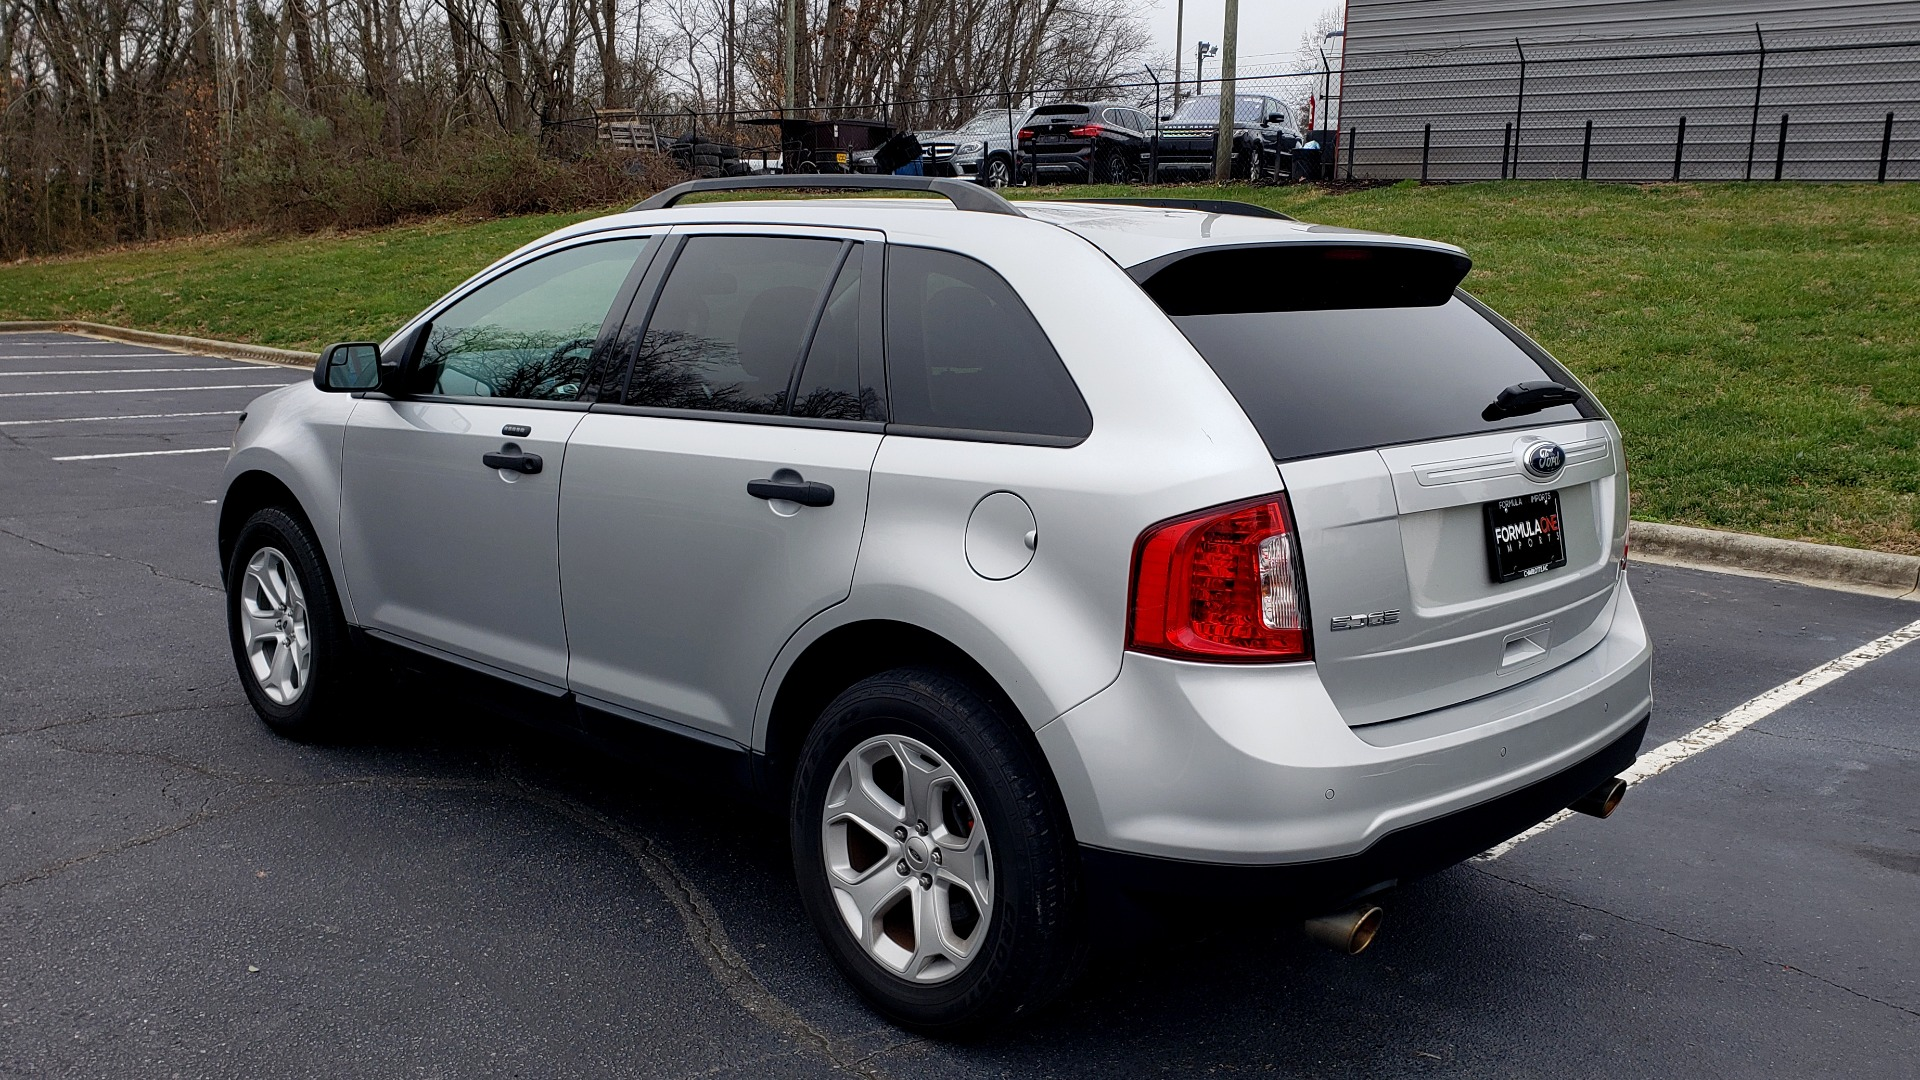 Used 2013 Ford EDGE SE / AWD / 18 IN WHEELS / SYNC / 3.5L V6 / AUTO for sale Sold at Formula Imports in Charlotte NC 28227 3